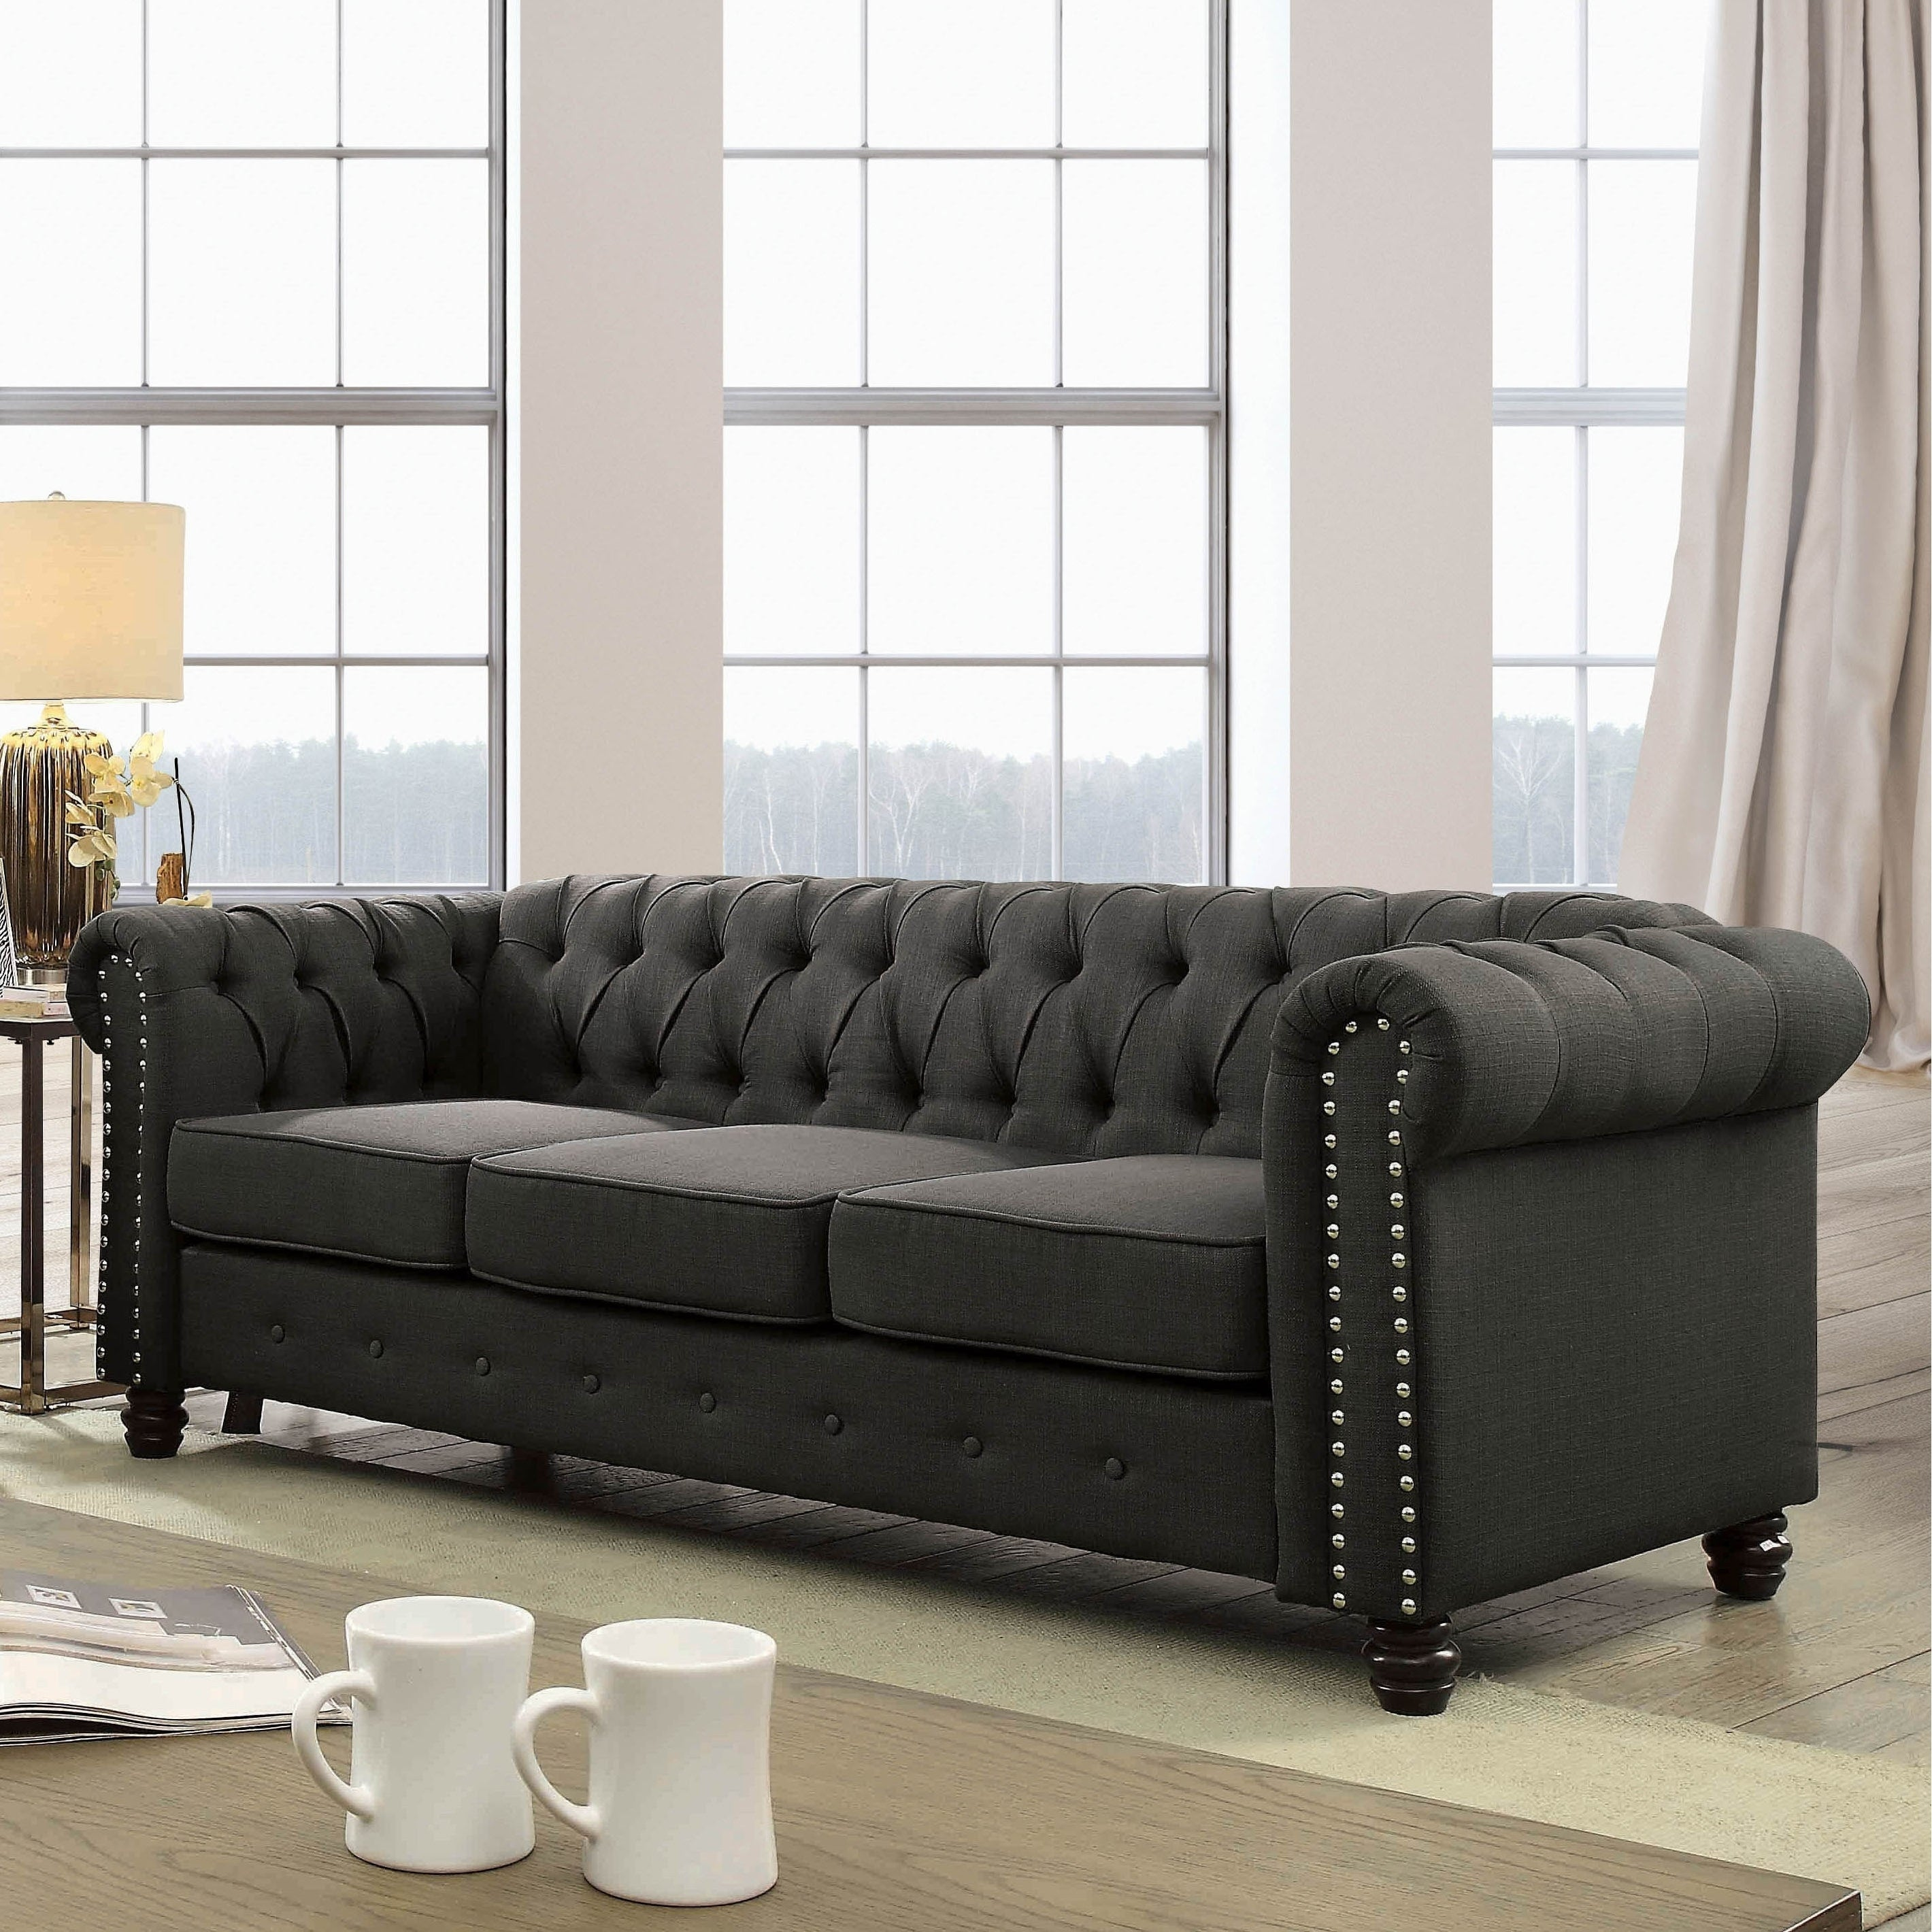 Shop Martine Traditional Tufted Chesterfield Sofa By Foa On Sale